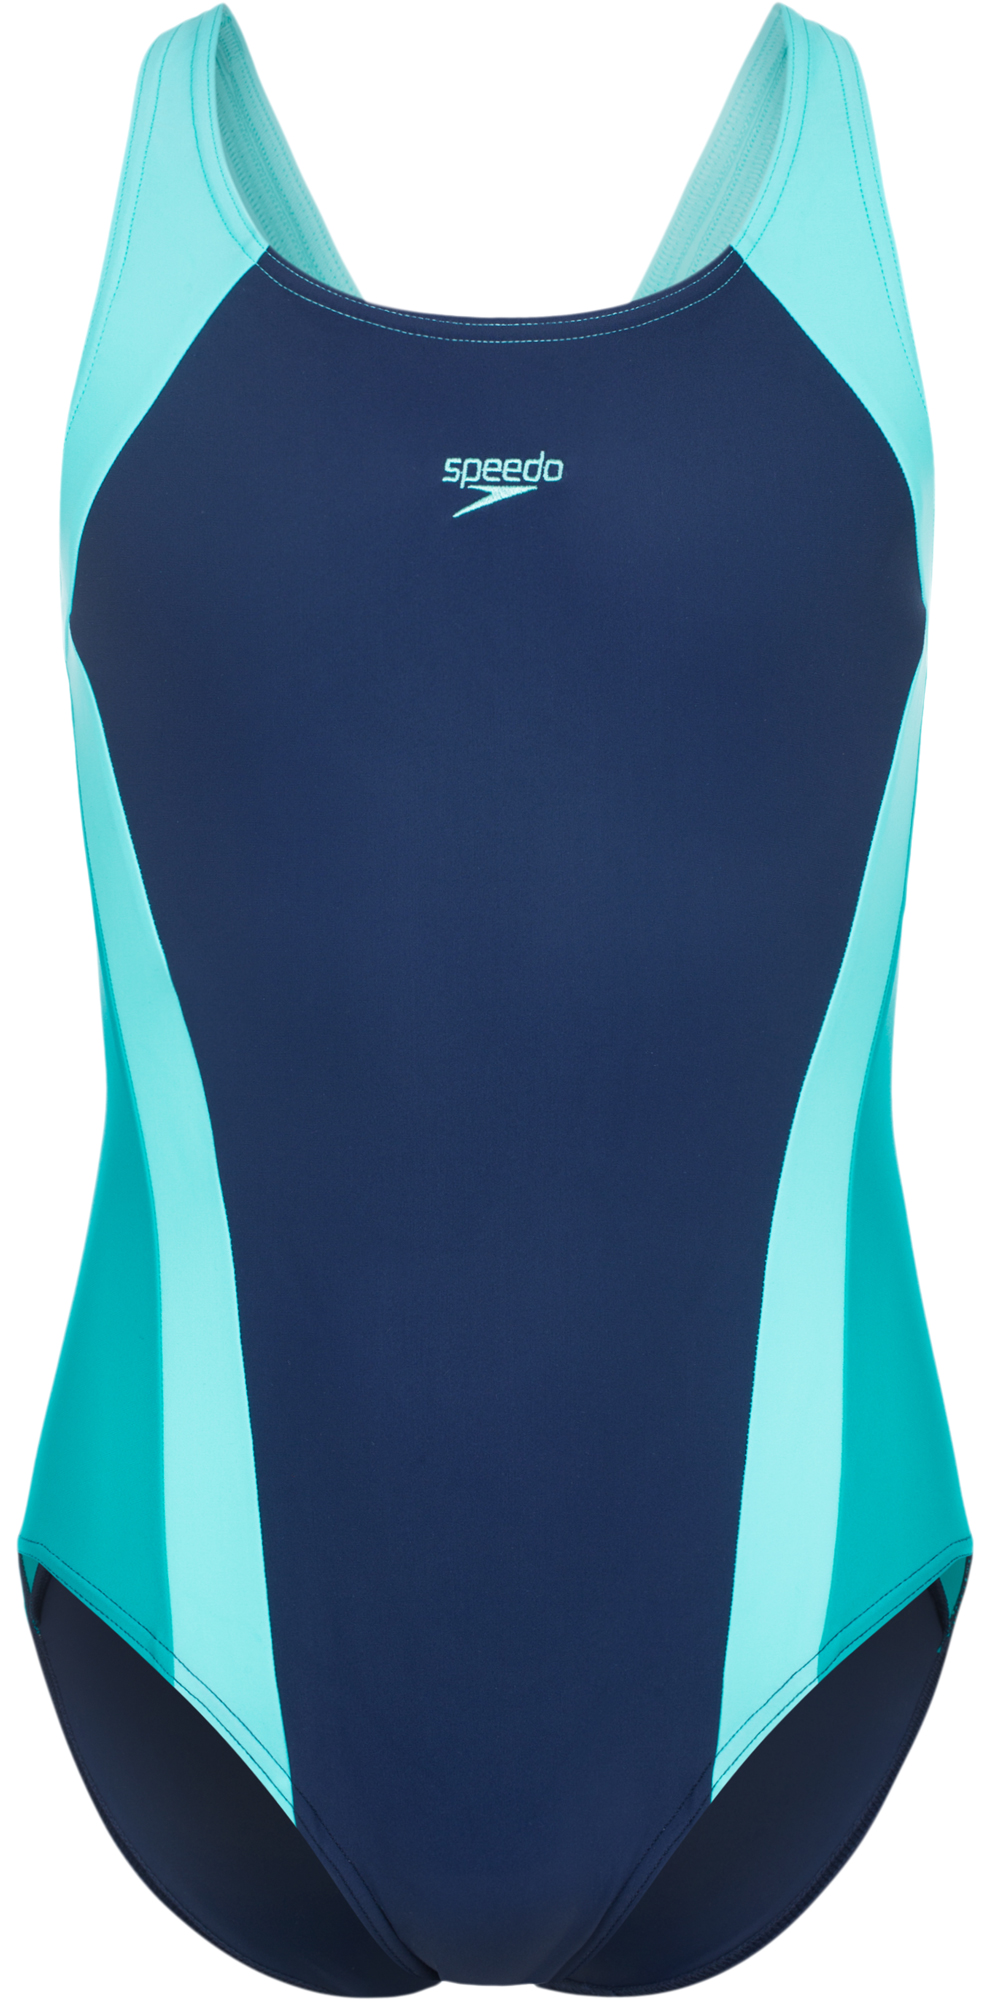 Speedo Купальник для девочек Speedo Contrast Panel speedo sp473duicm58